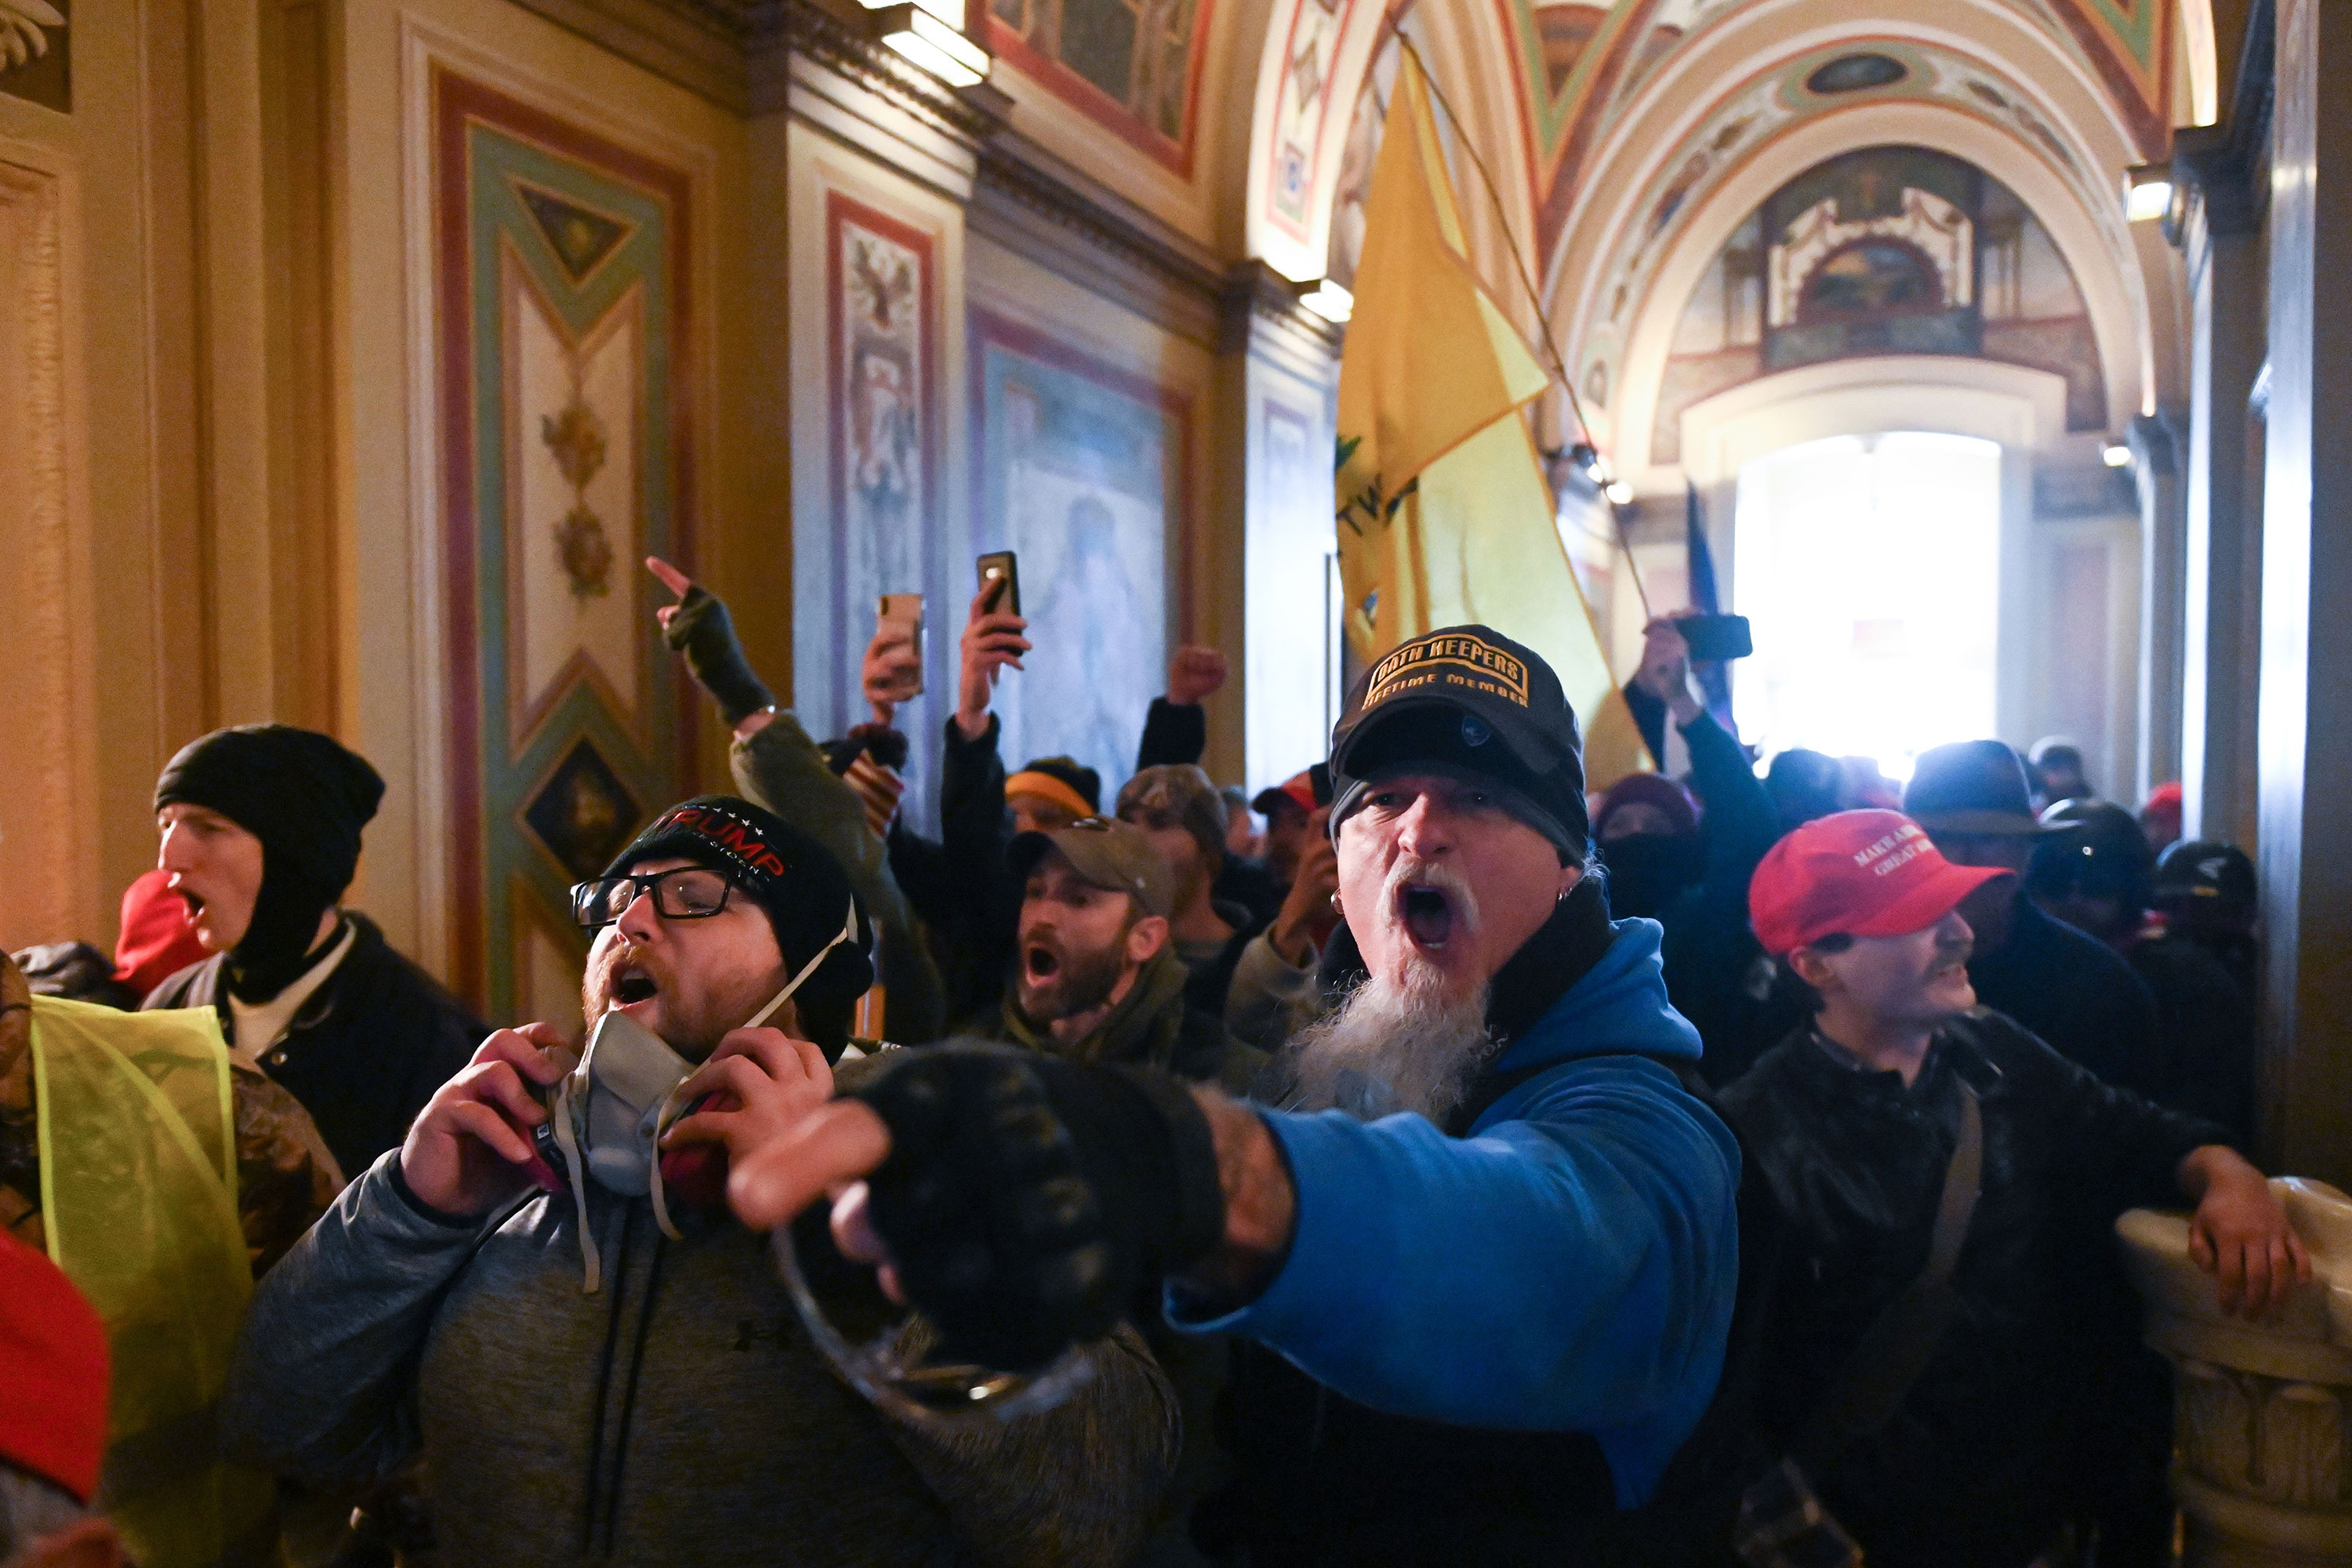 Feds warn extremists may be emboldened to carry out additional attacks after Capitol insurrection